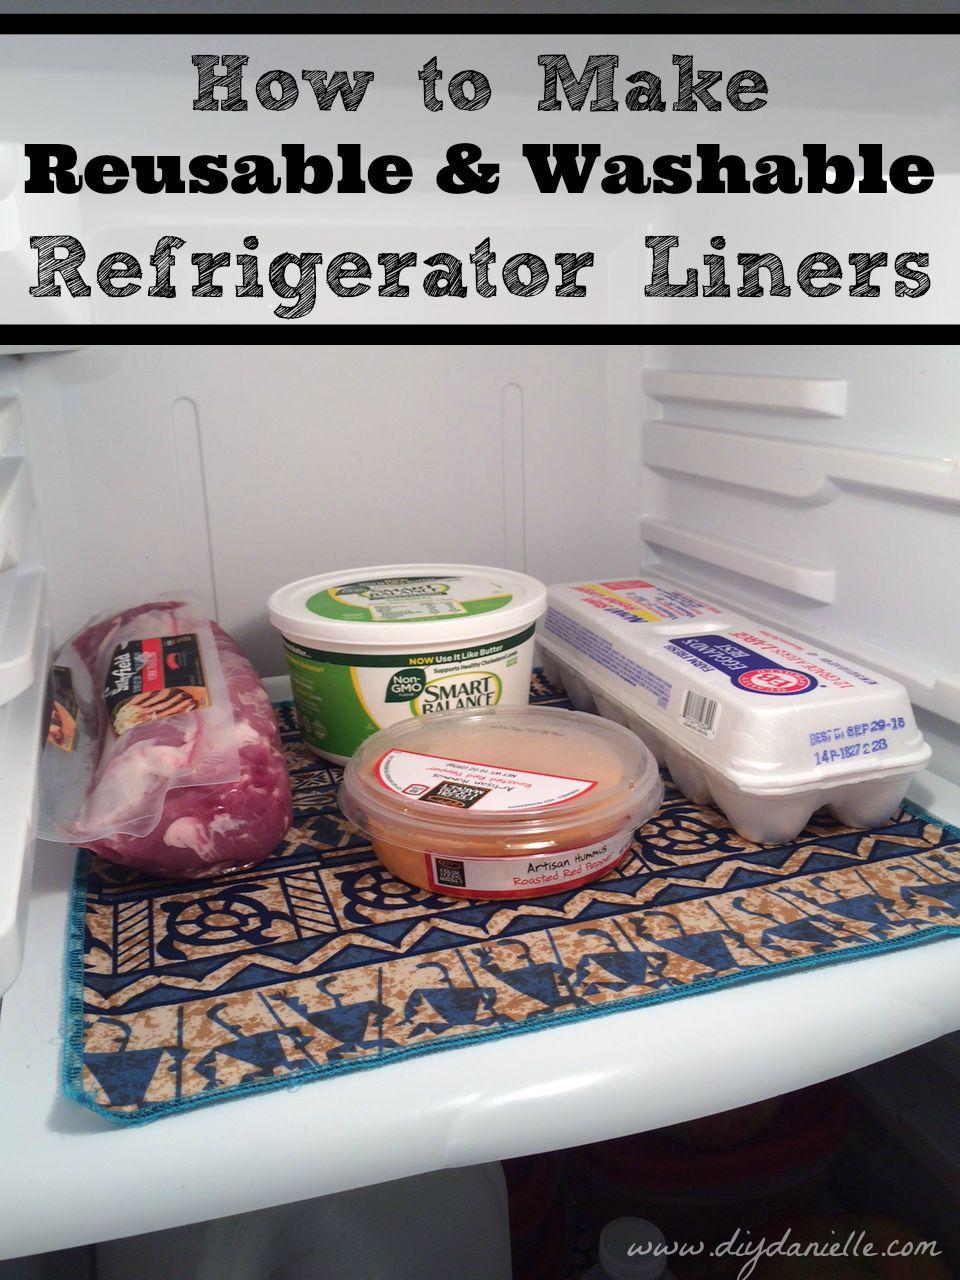 shelf cleaning appliances clublilobal refrigerator liner com liners campbellandkellarteam diy fridge tips